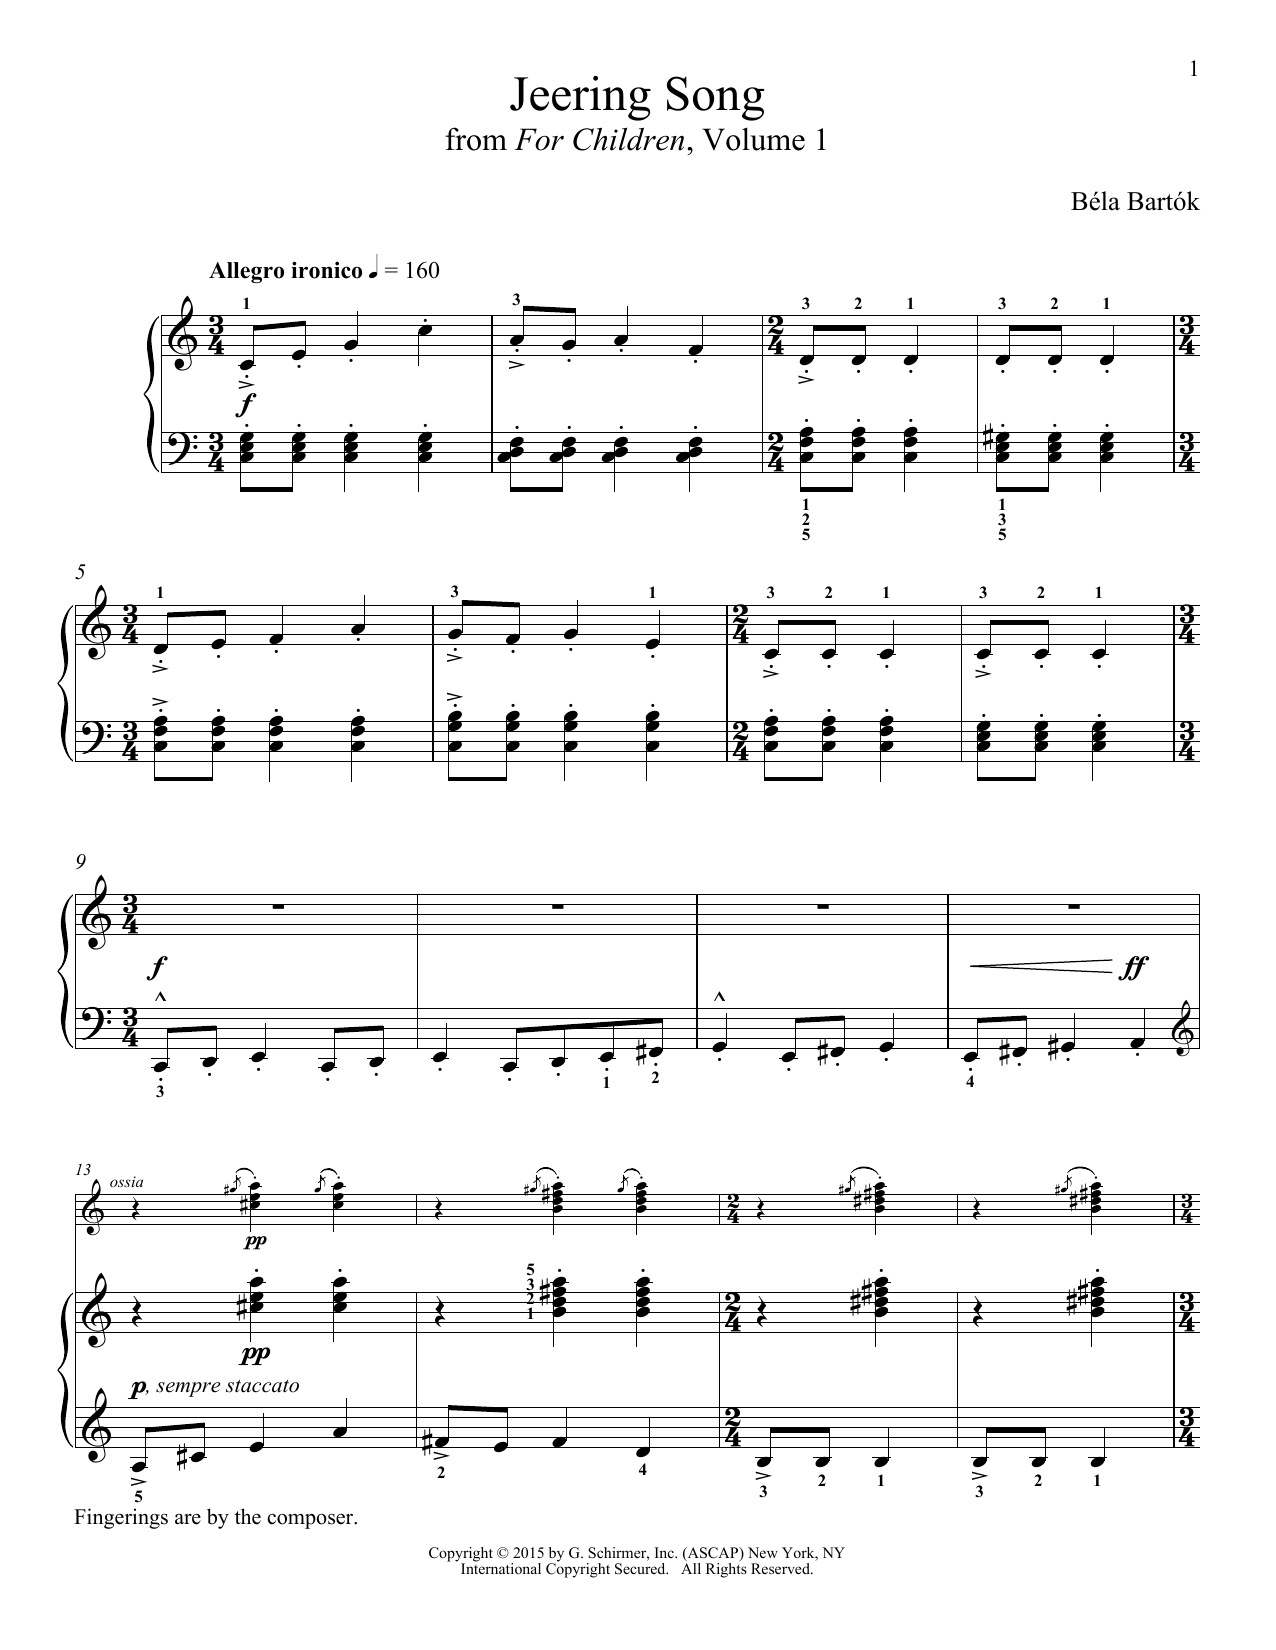 Richard Walters Jeering Song sheet music notes and chords